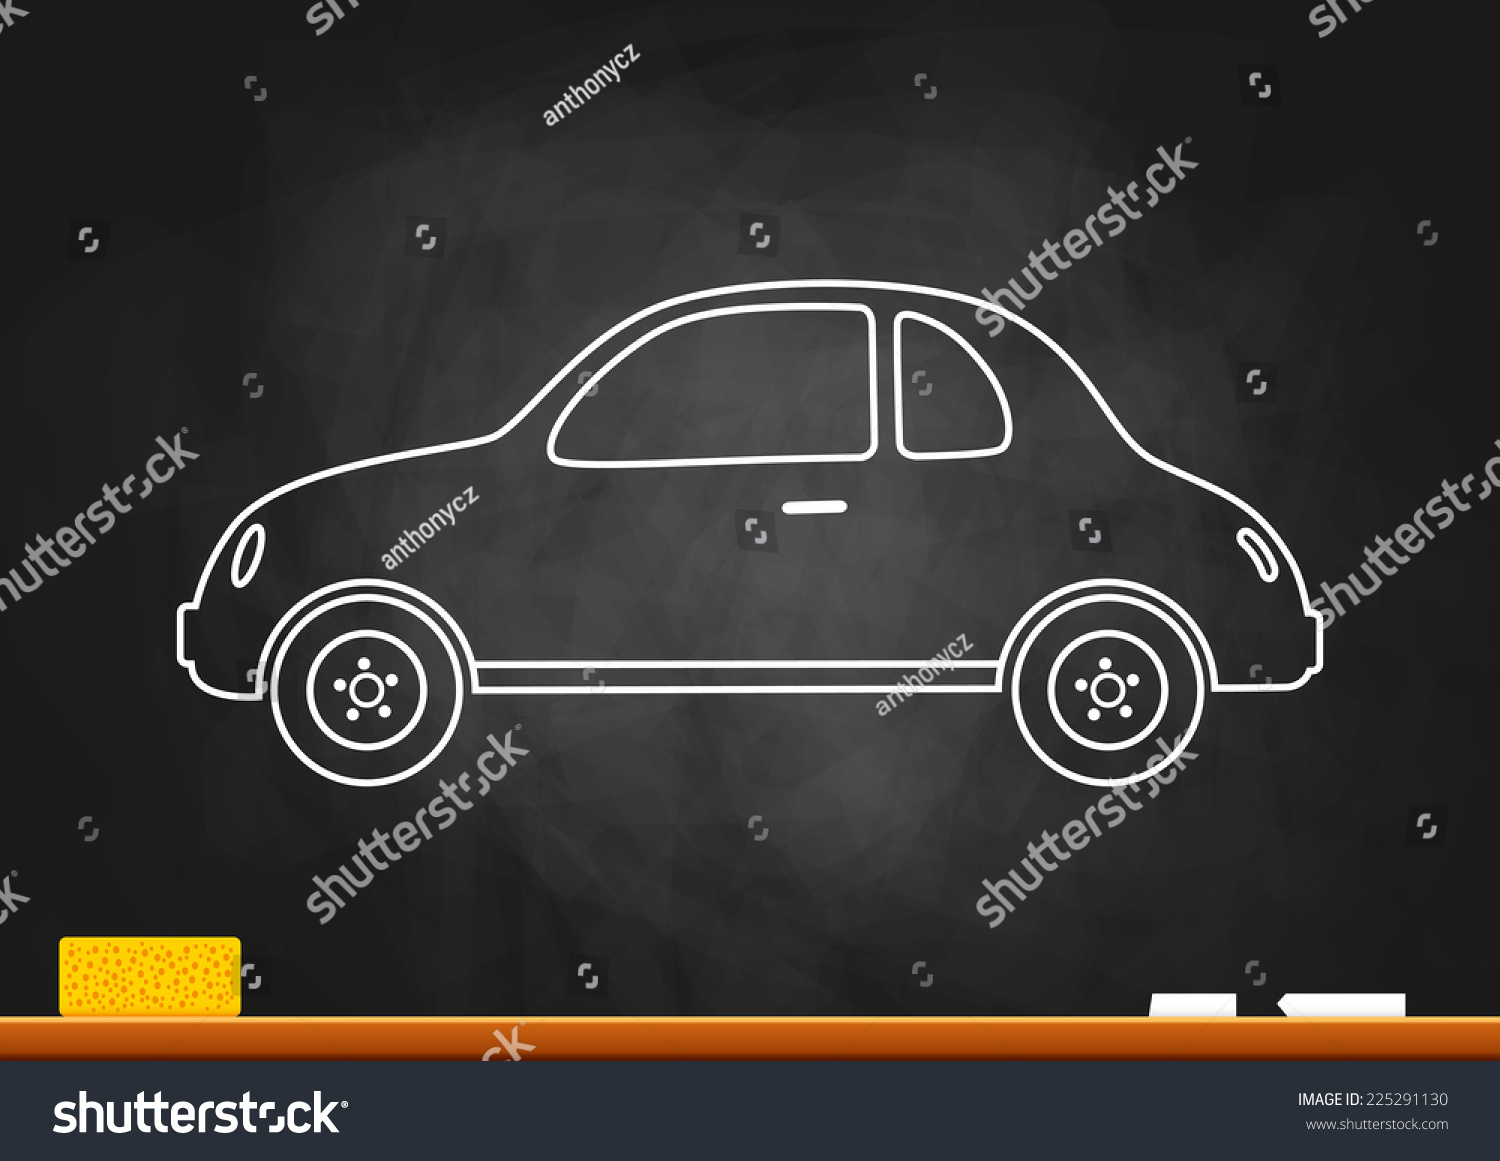 Drawing of car on blackboard